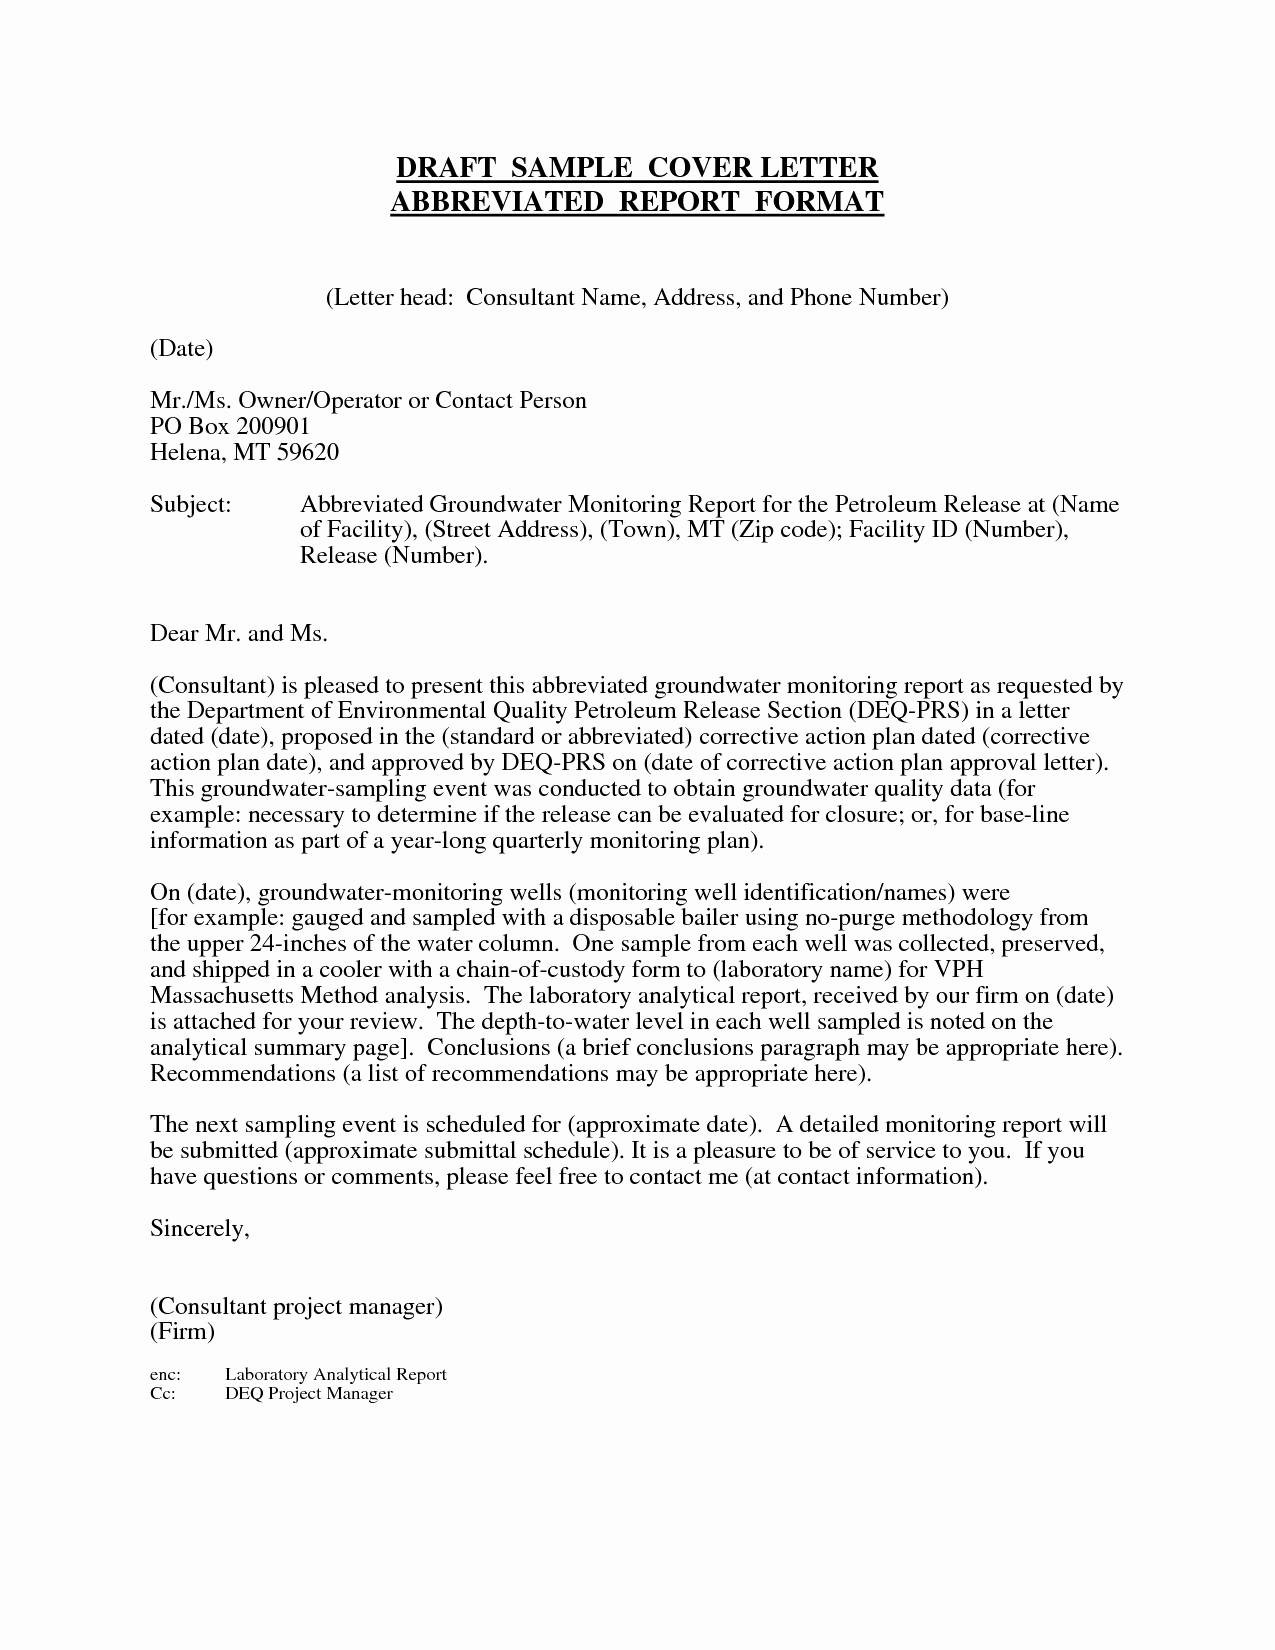 Marketing Cover Letter Template - Director Marketing Cover Letter